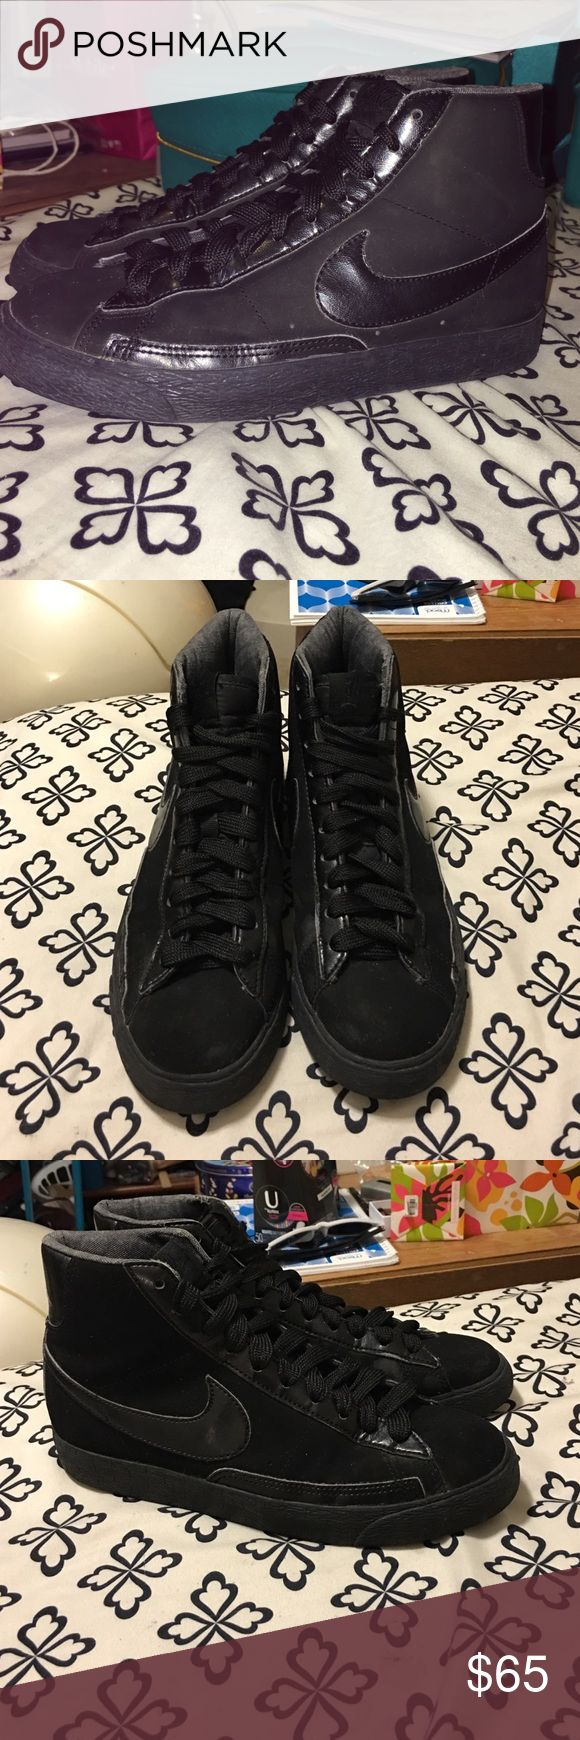 Black Nike shoes Women's size 7.5 suede all black Nike shoes 8/10 condition Nike Shoes Sneakers